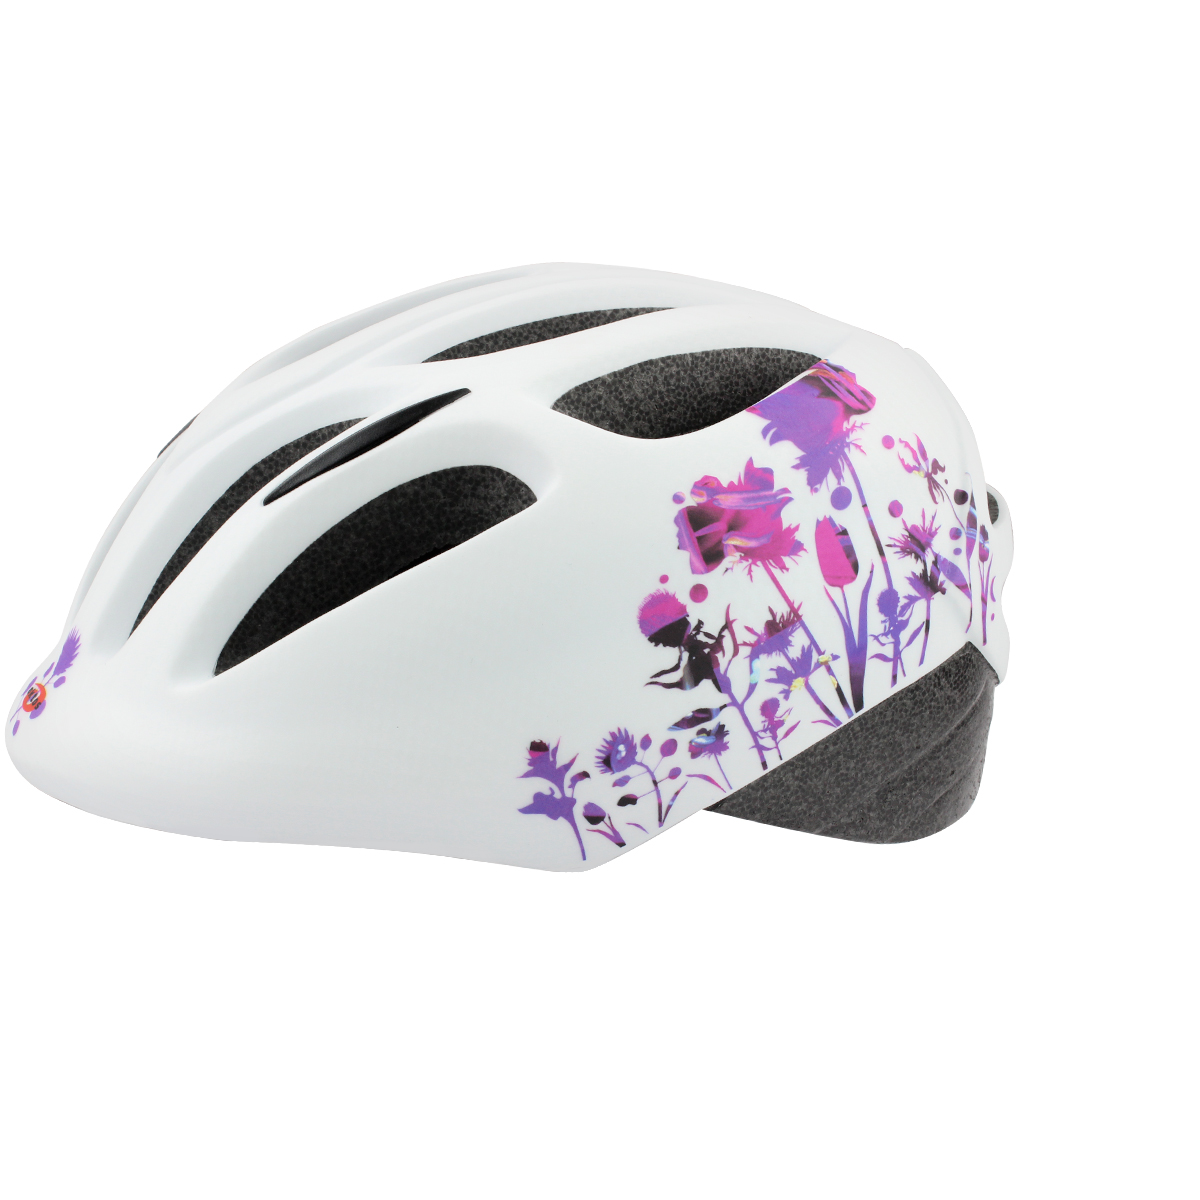 Casque vélo Oktos City Blanc